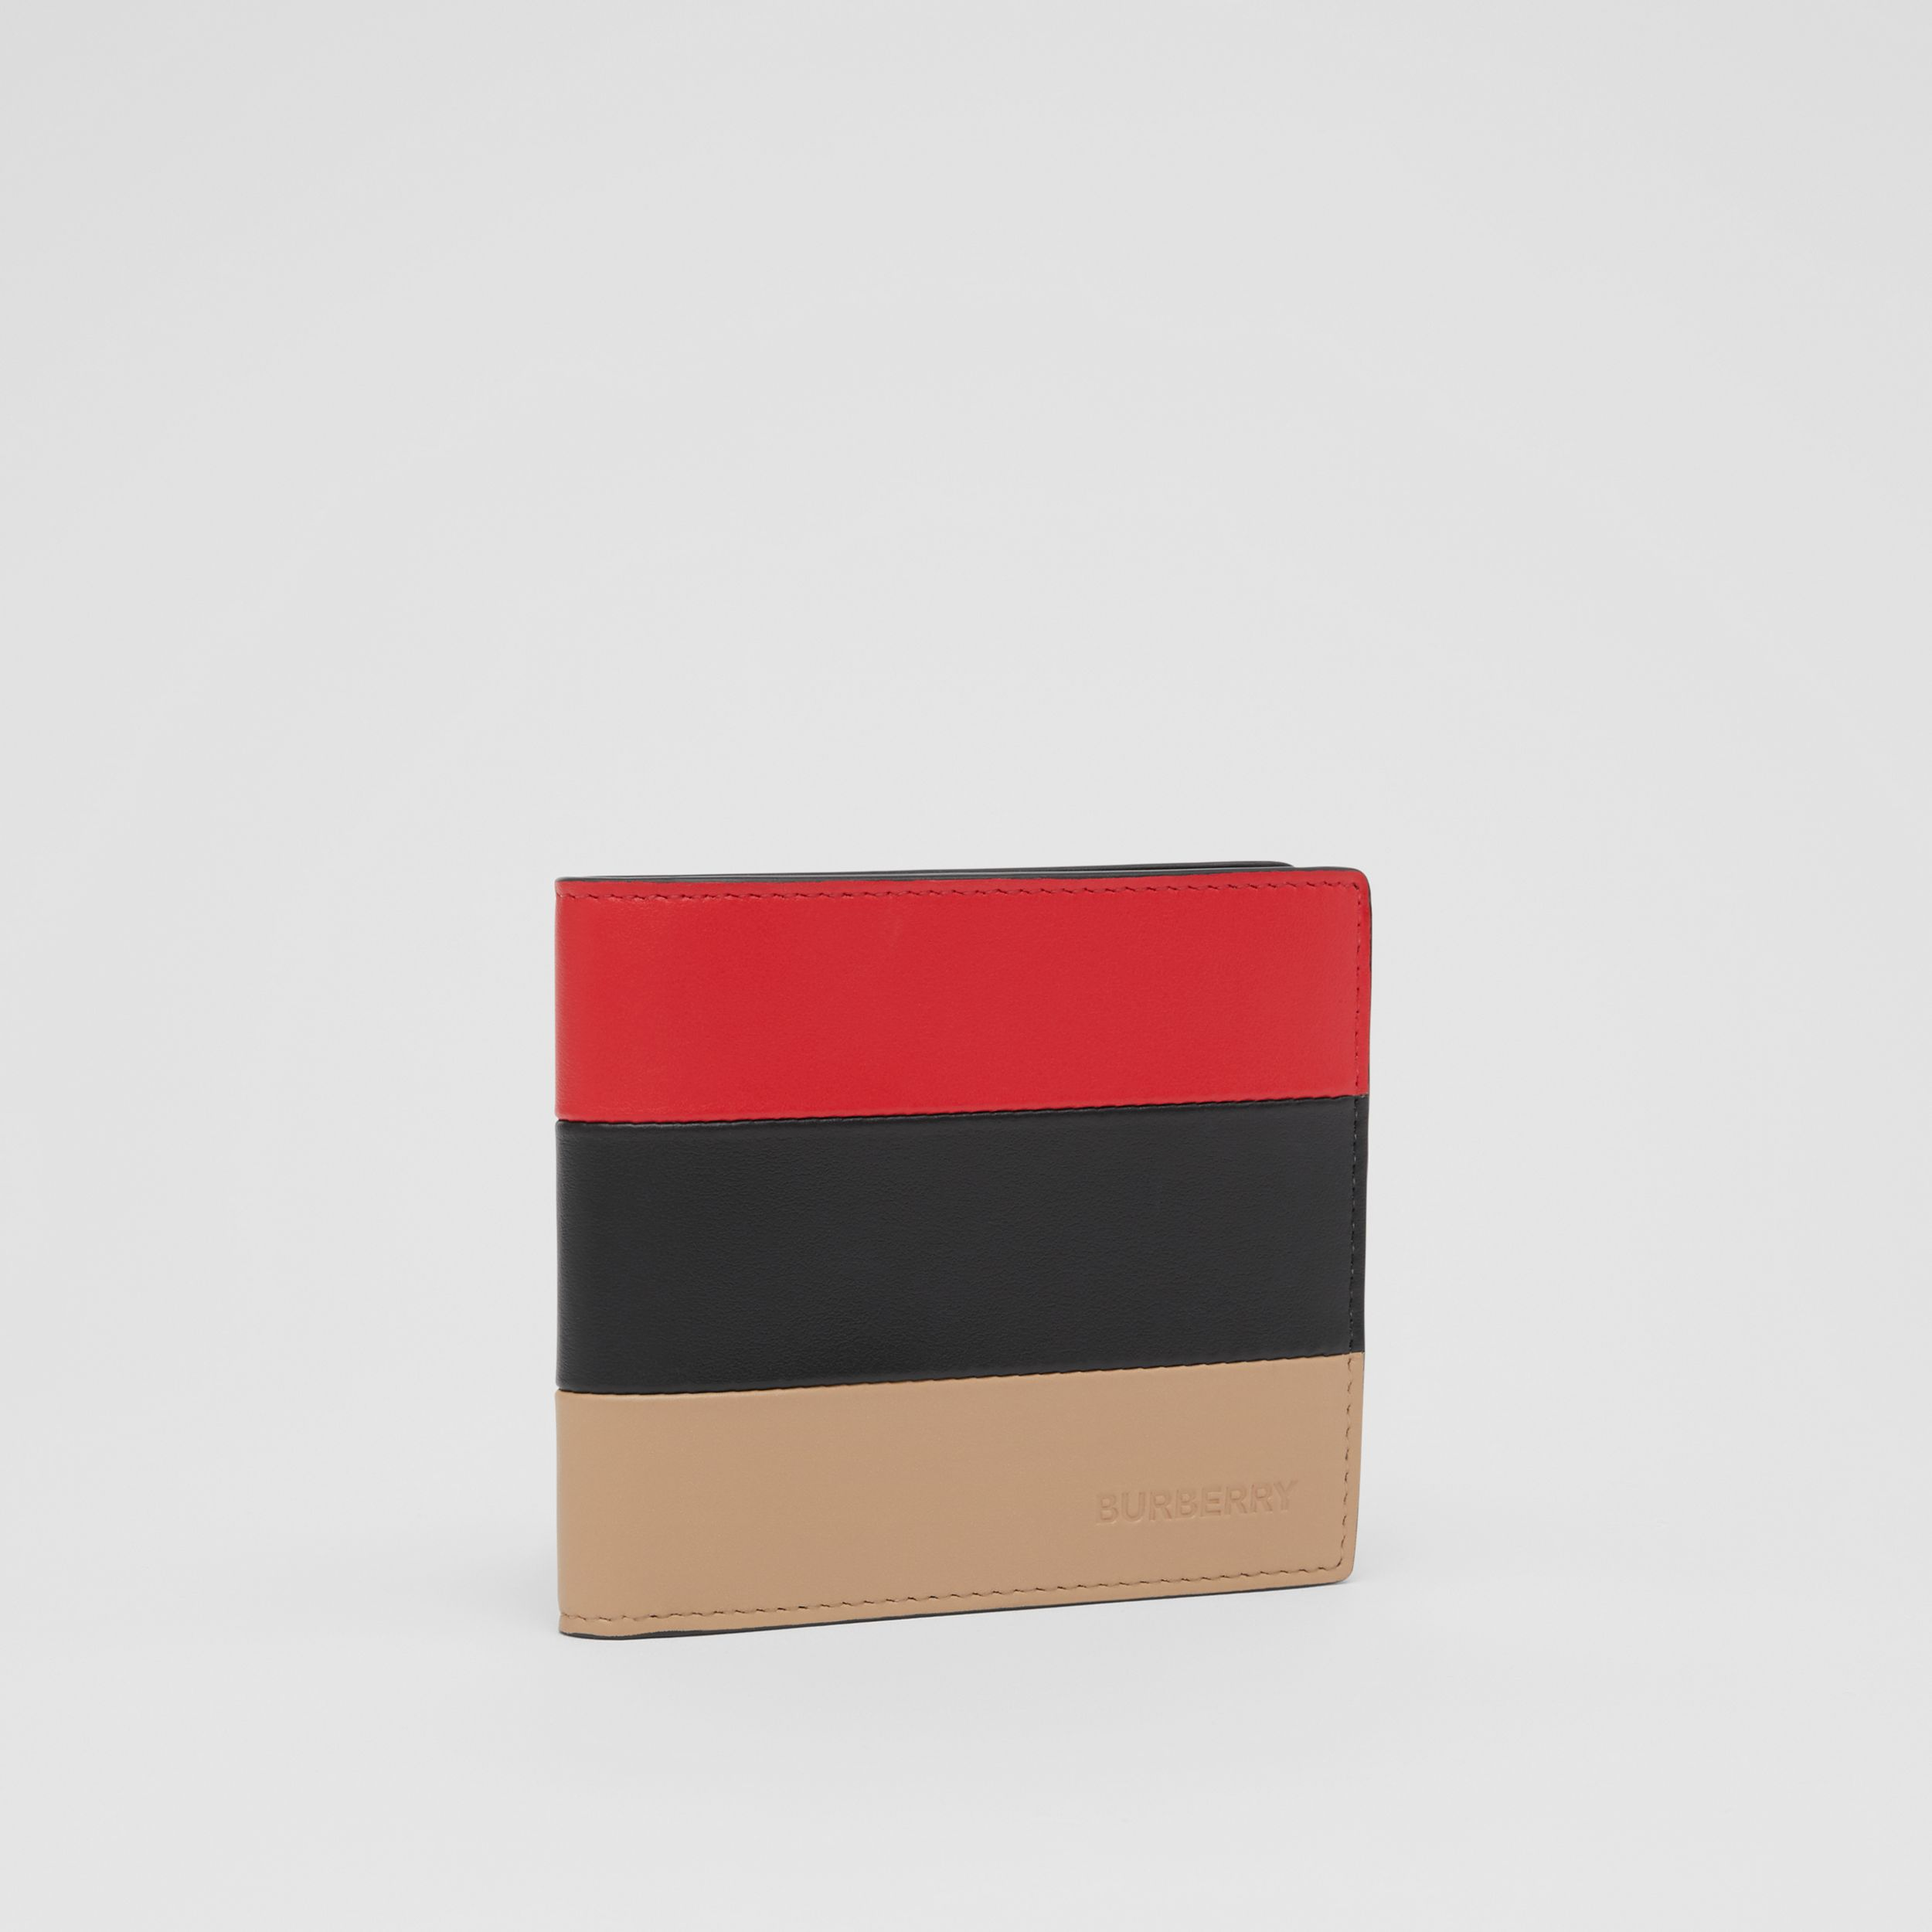 Colour Block Leather International Bifold Wallet in Red/black/beige - Men | Burberry United States - 4